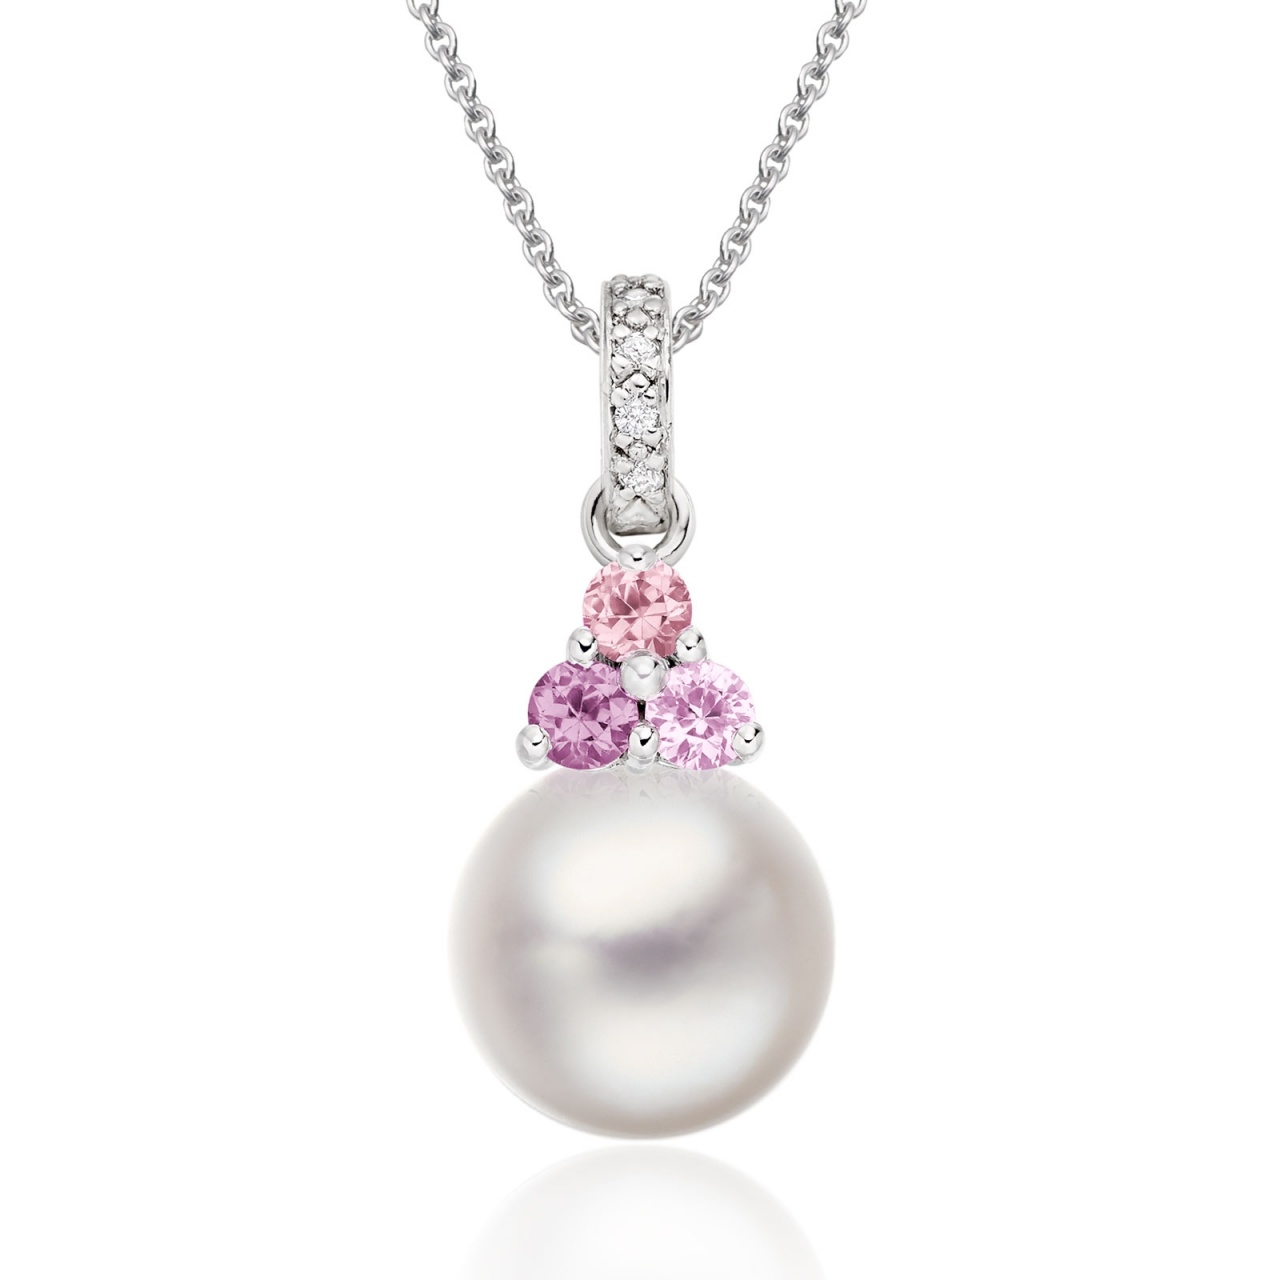 Astral Dawn Akoya Pearl Pendant in White Gold-APWRWG1327-1